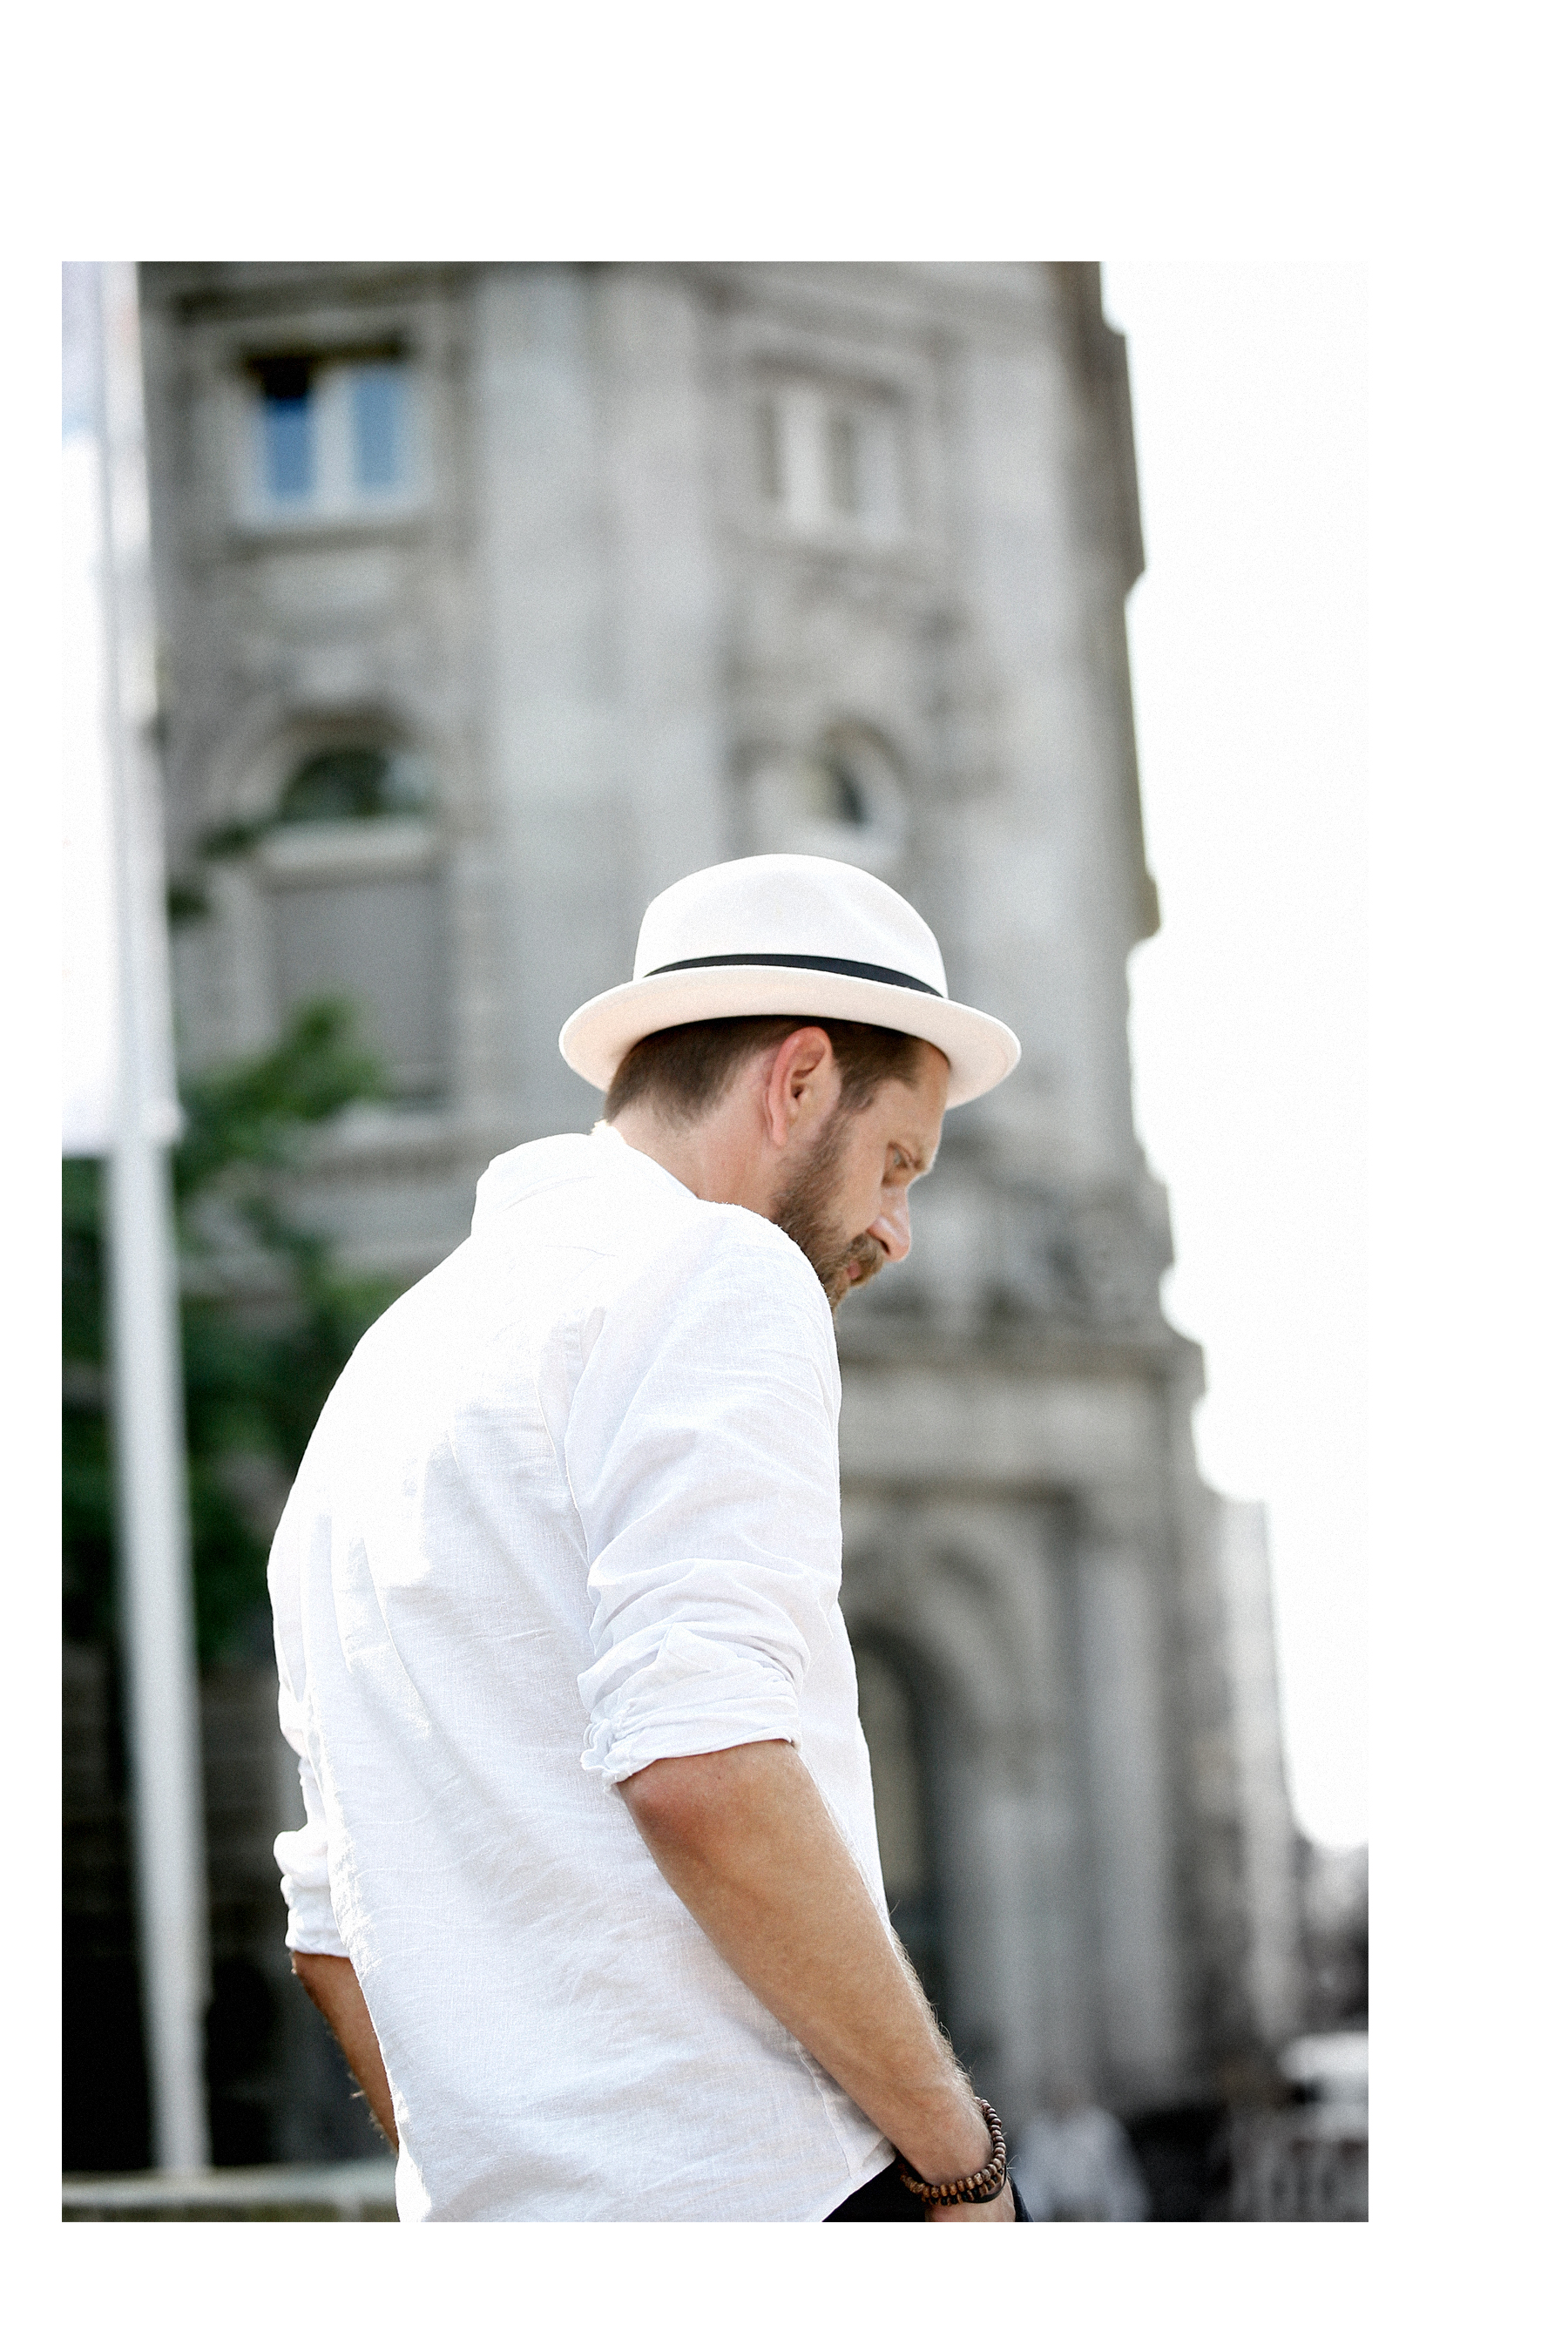 outfit white summer chic business sporty hat stetson zara man linen shirt elegant menlook menfashion manfashion beardedmen mann mit bart sacha schuhe leder schnürschuhe leather boots max bechmann style fashionblogger düsseldorf cats & dogs outfit 2